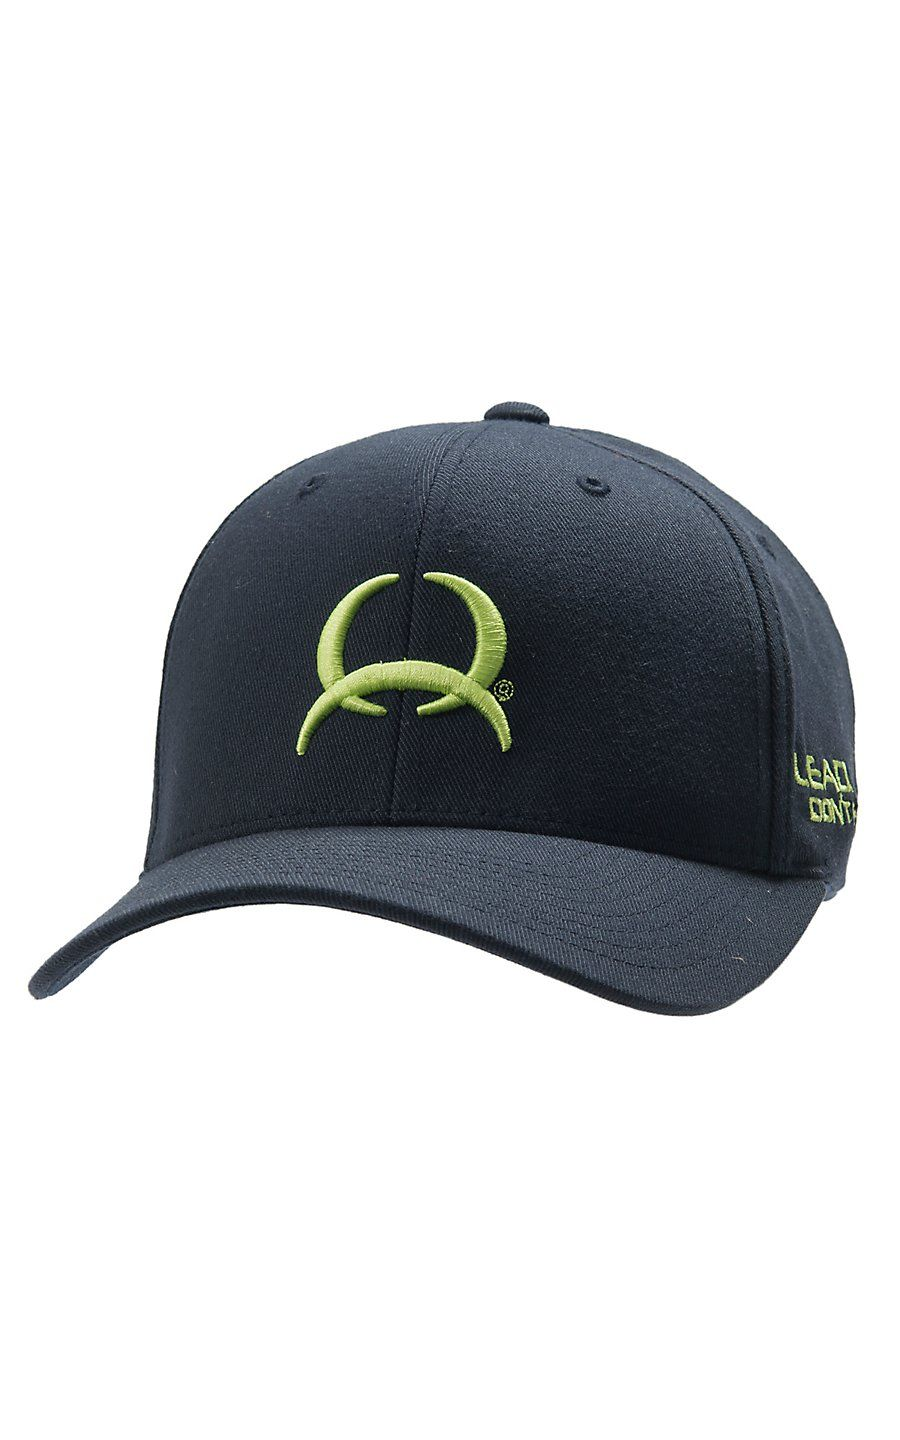 Cinch Navy with Lime Tech Logo Flex Fit Cap C0658006  ccd1777008d